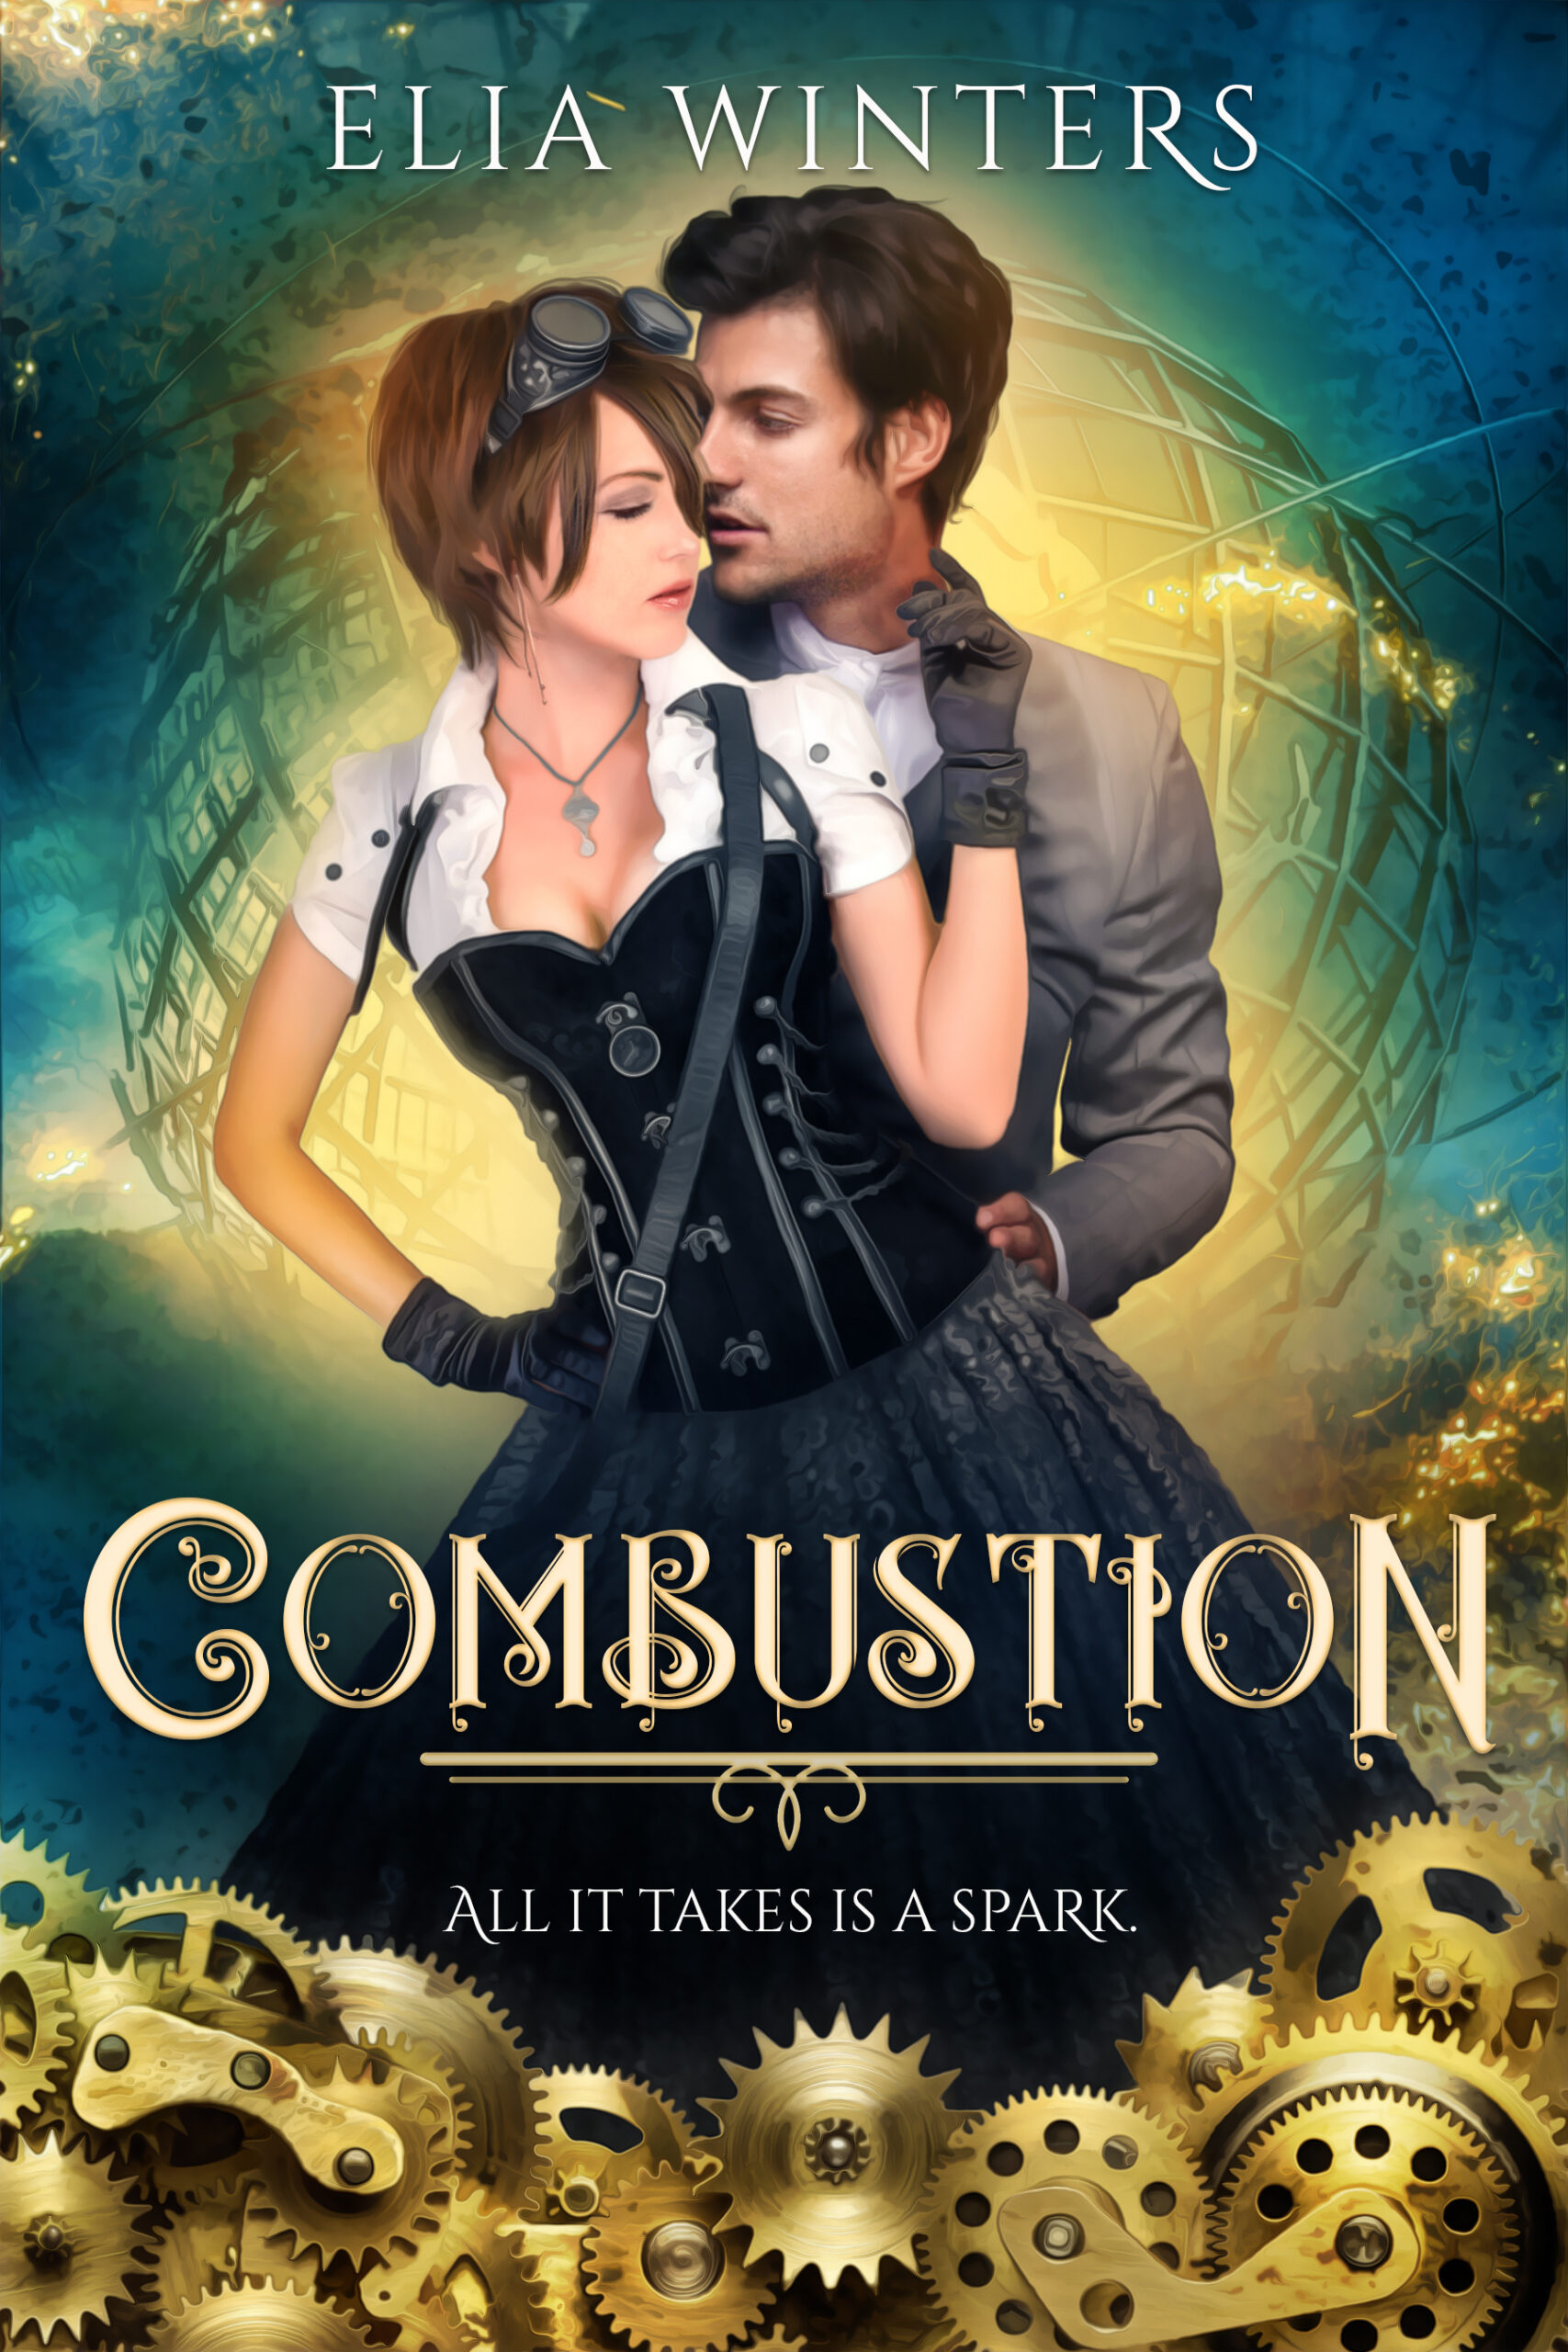 Combustion cover, which includes two hot people in a clinch, gears, and a very steampunk aesthetic